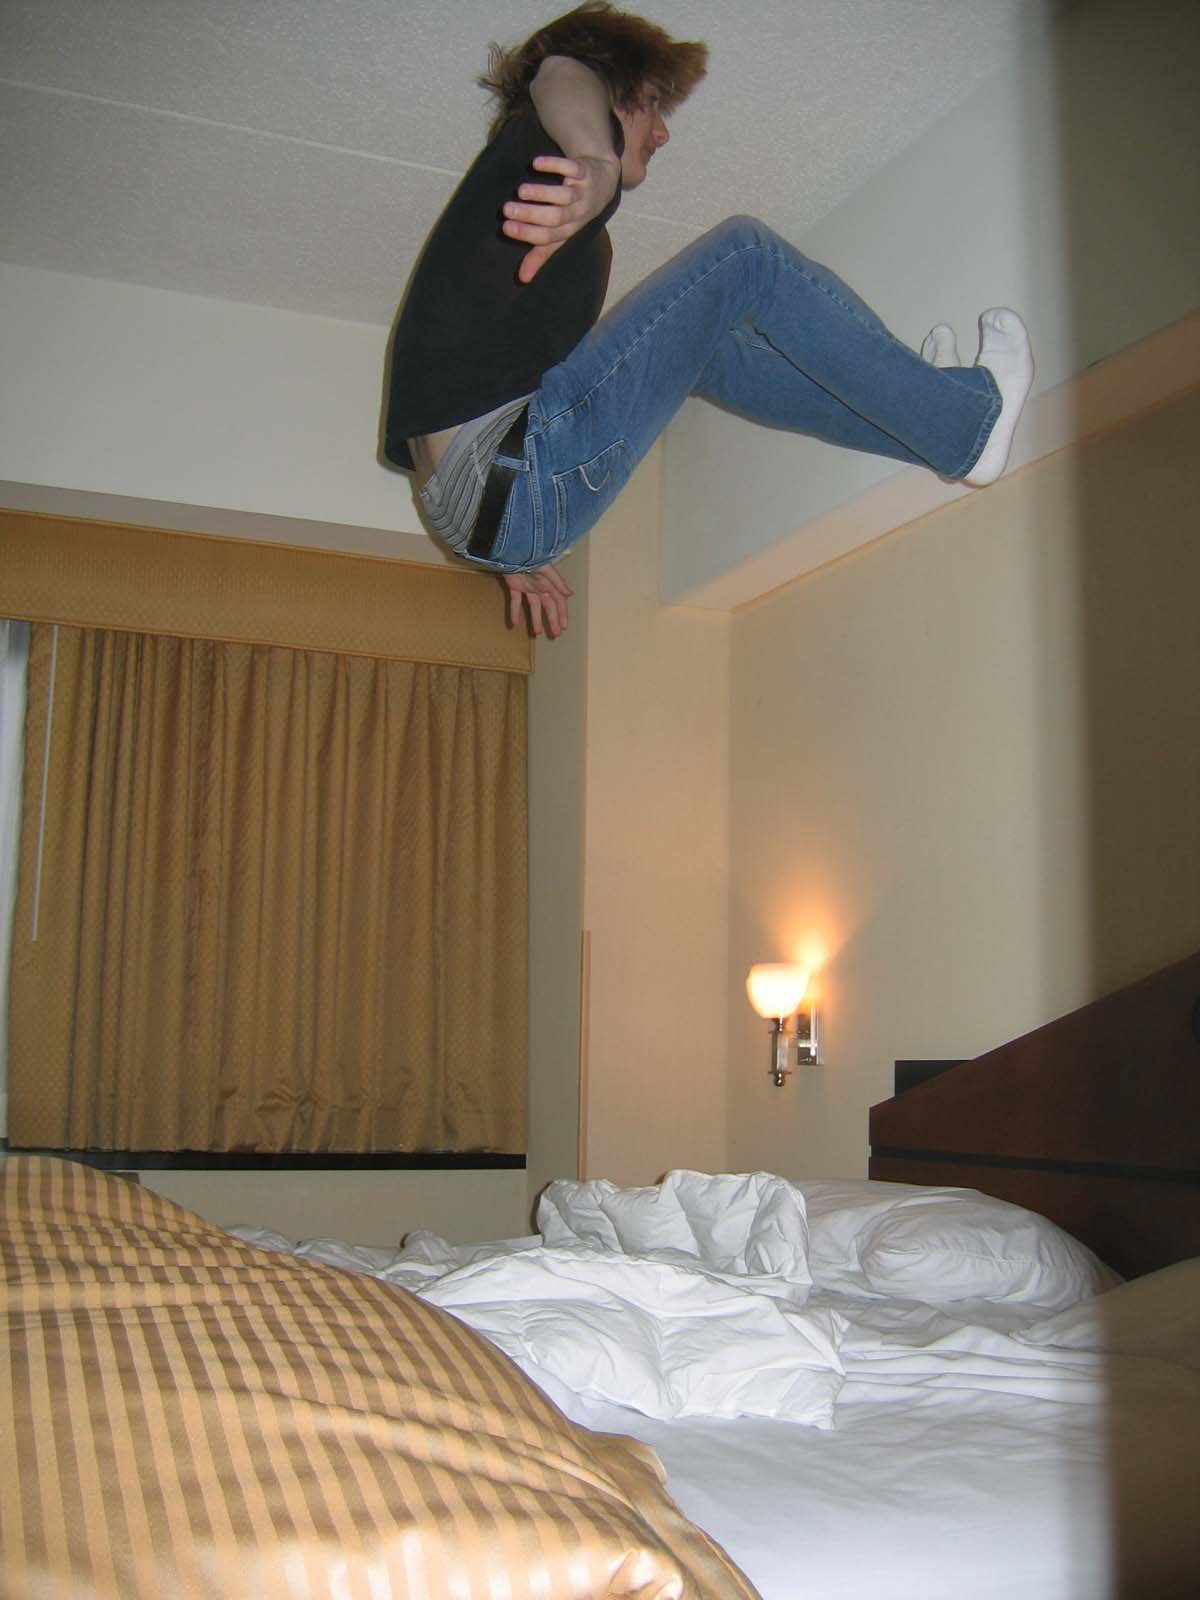 More Hotel Bed Jumping